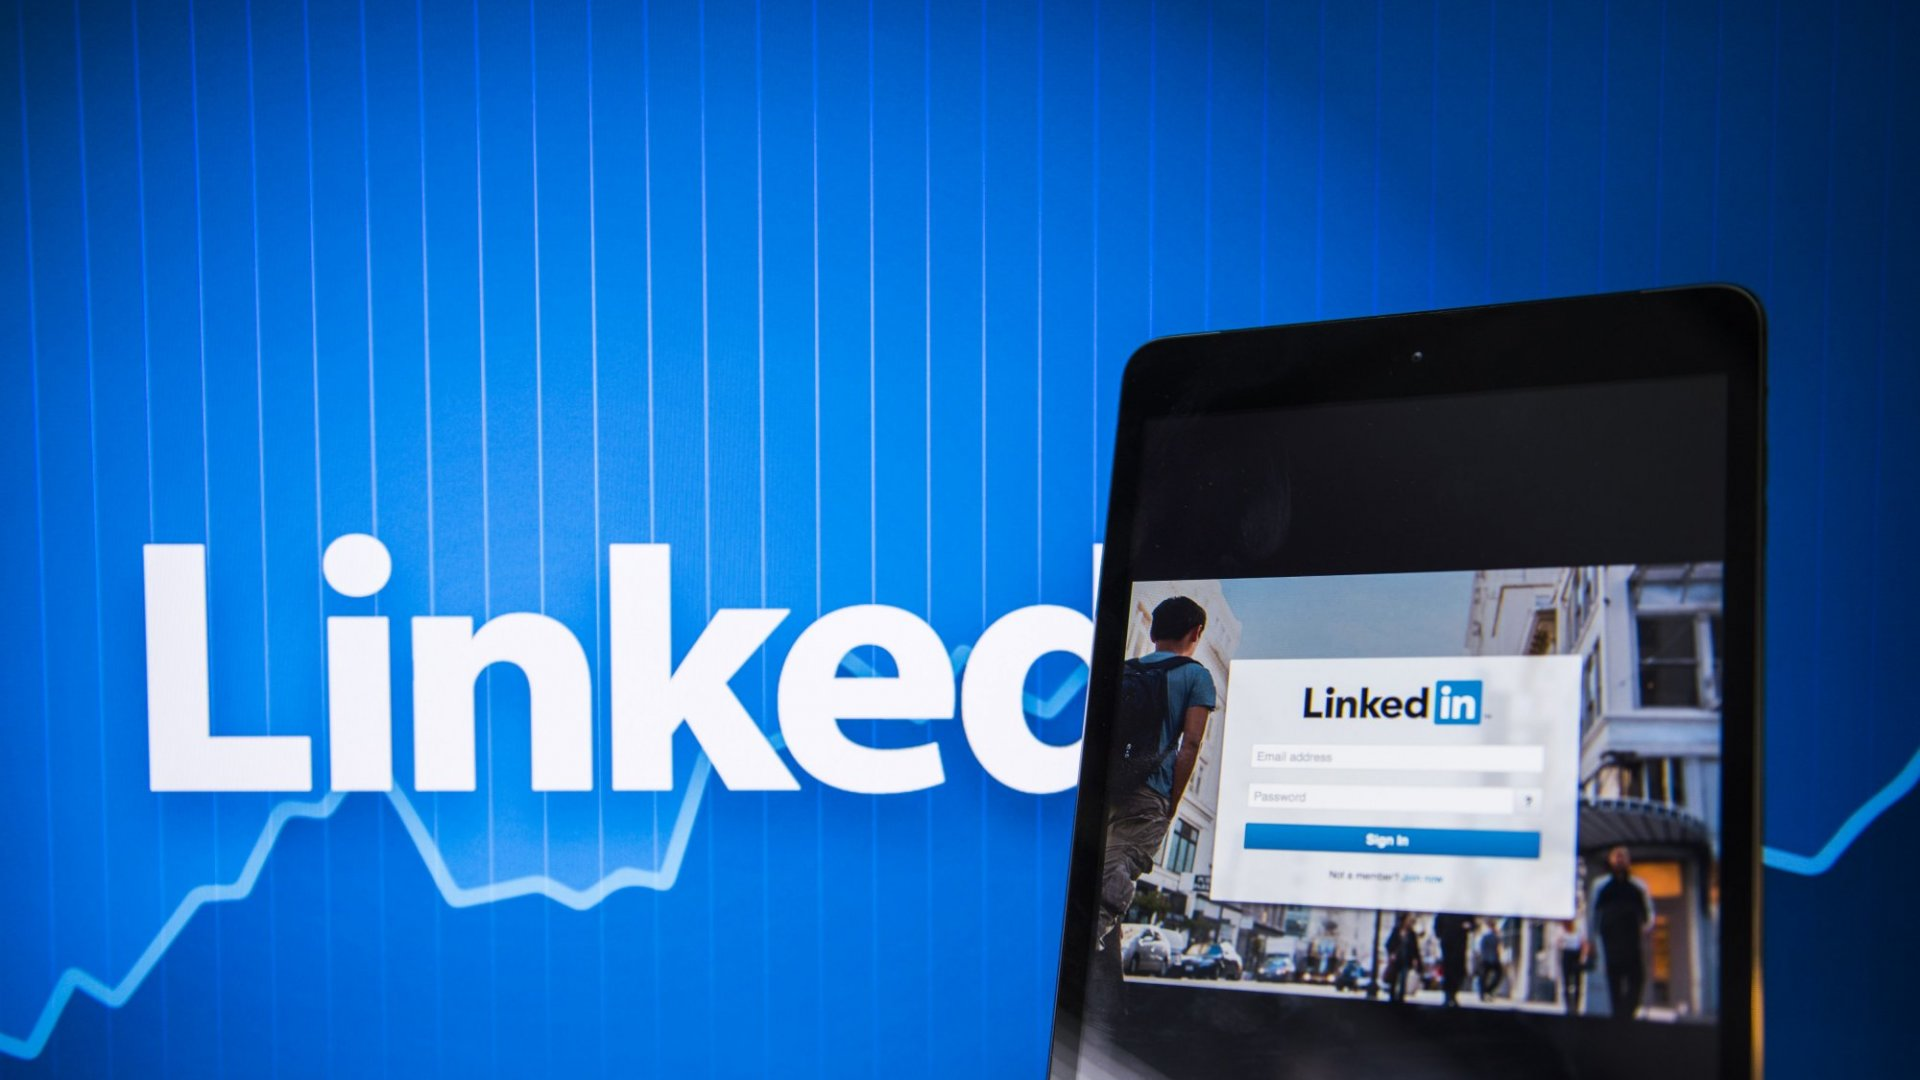 Show Don't Tell: Stop Using Lazy Phrases on LinkedIn If You Want to Stand Out